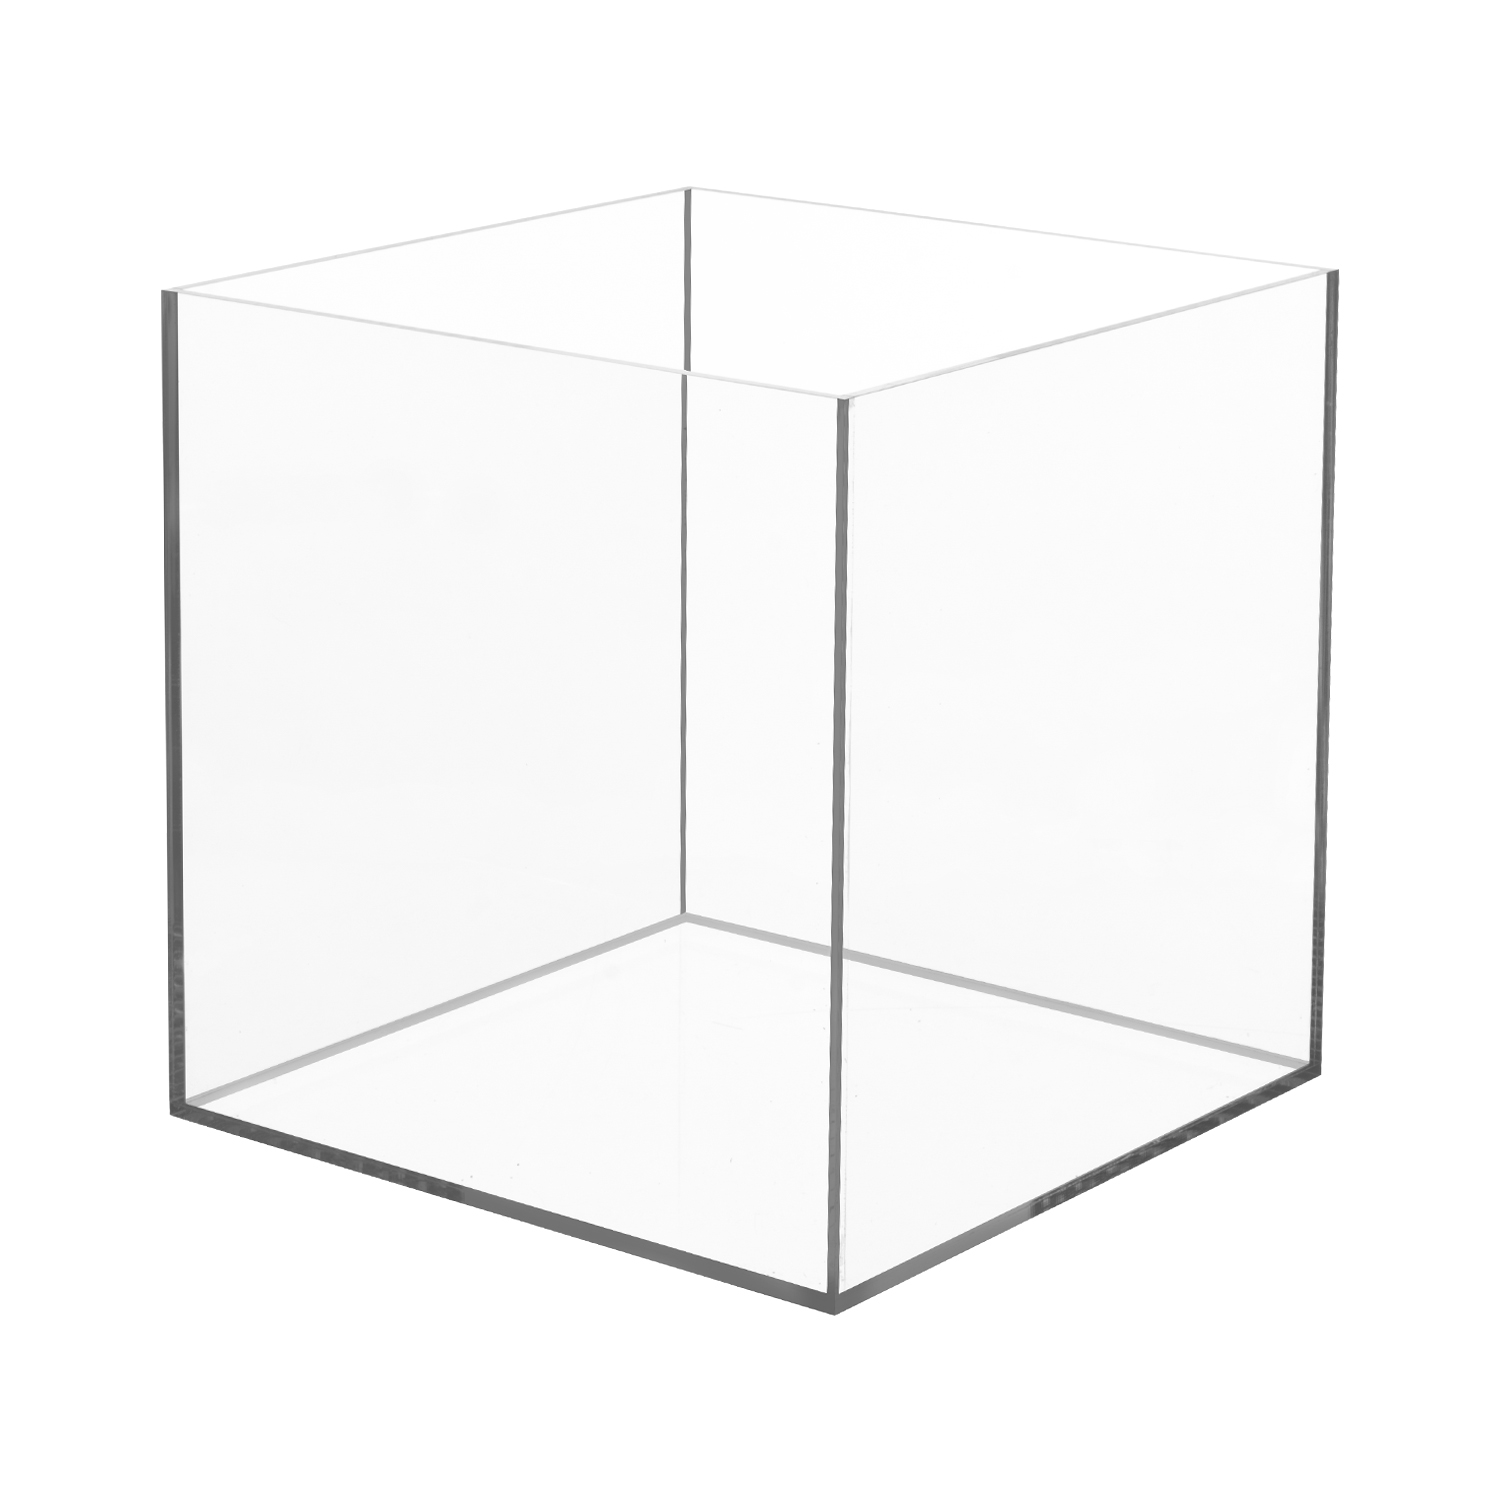 acrylic 5 sided box 16 x 16 x 16 buy acrylic displays shop acrylic pop displays online. Black Bedroom Furniture Sets. Home Design Ideas